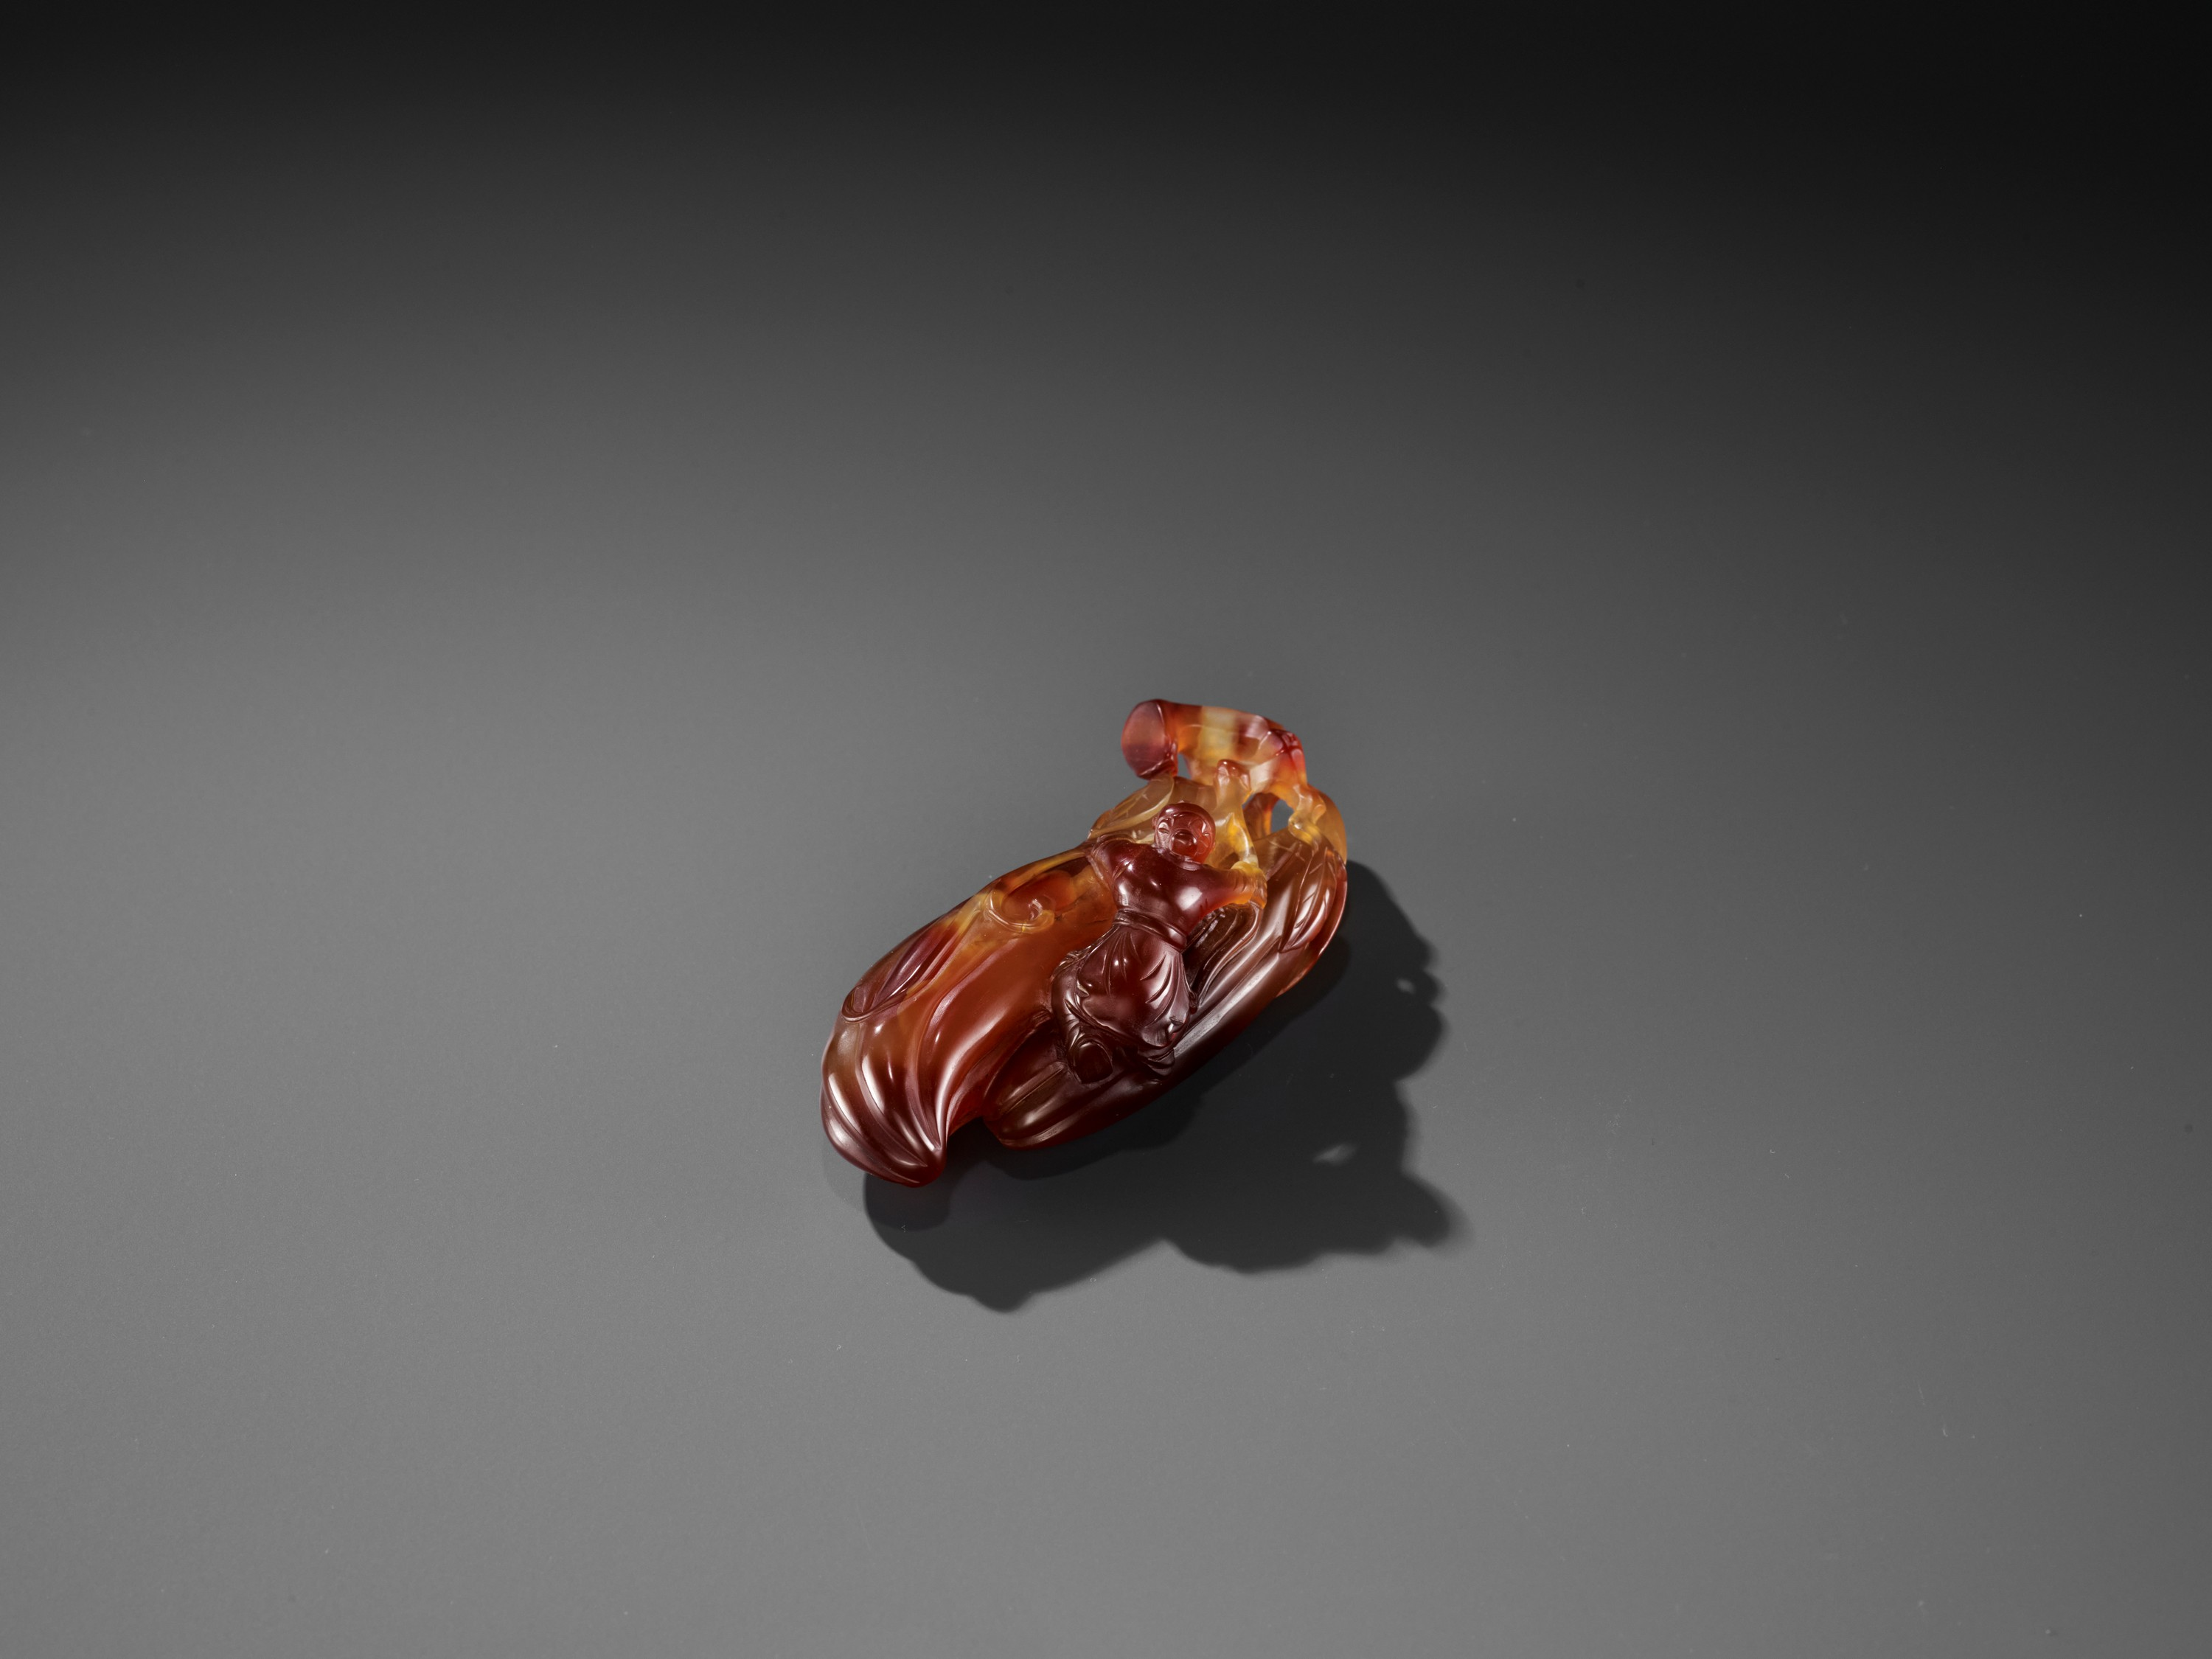 A FINE AGATE 'MELON AND BOY' GROUP, QING - Image 5 of 9